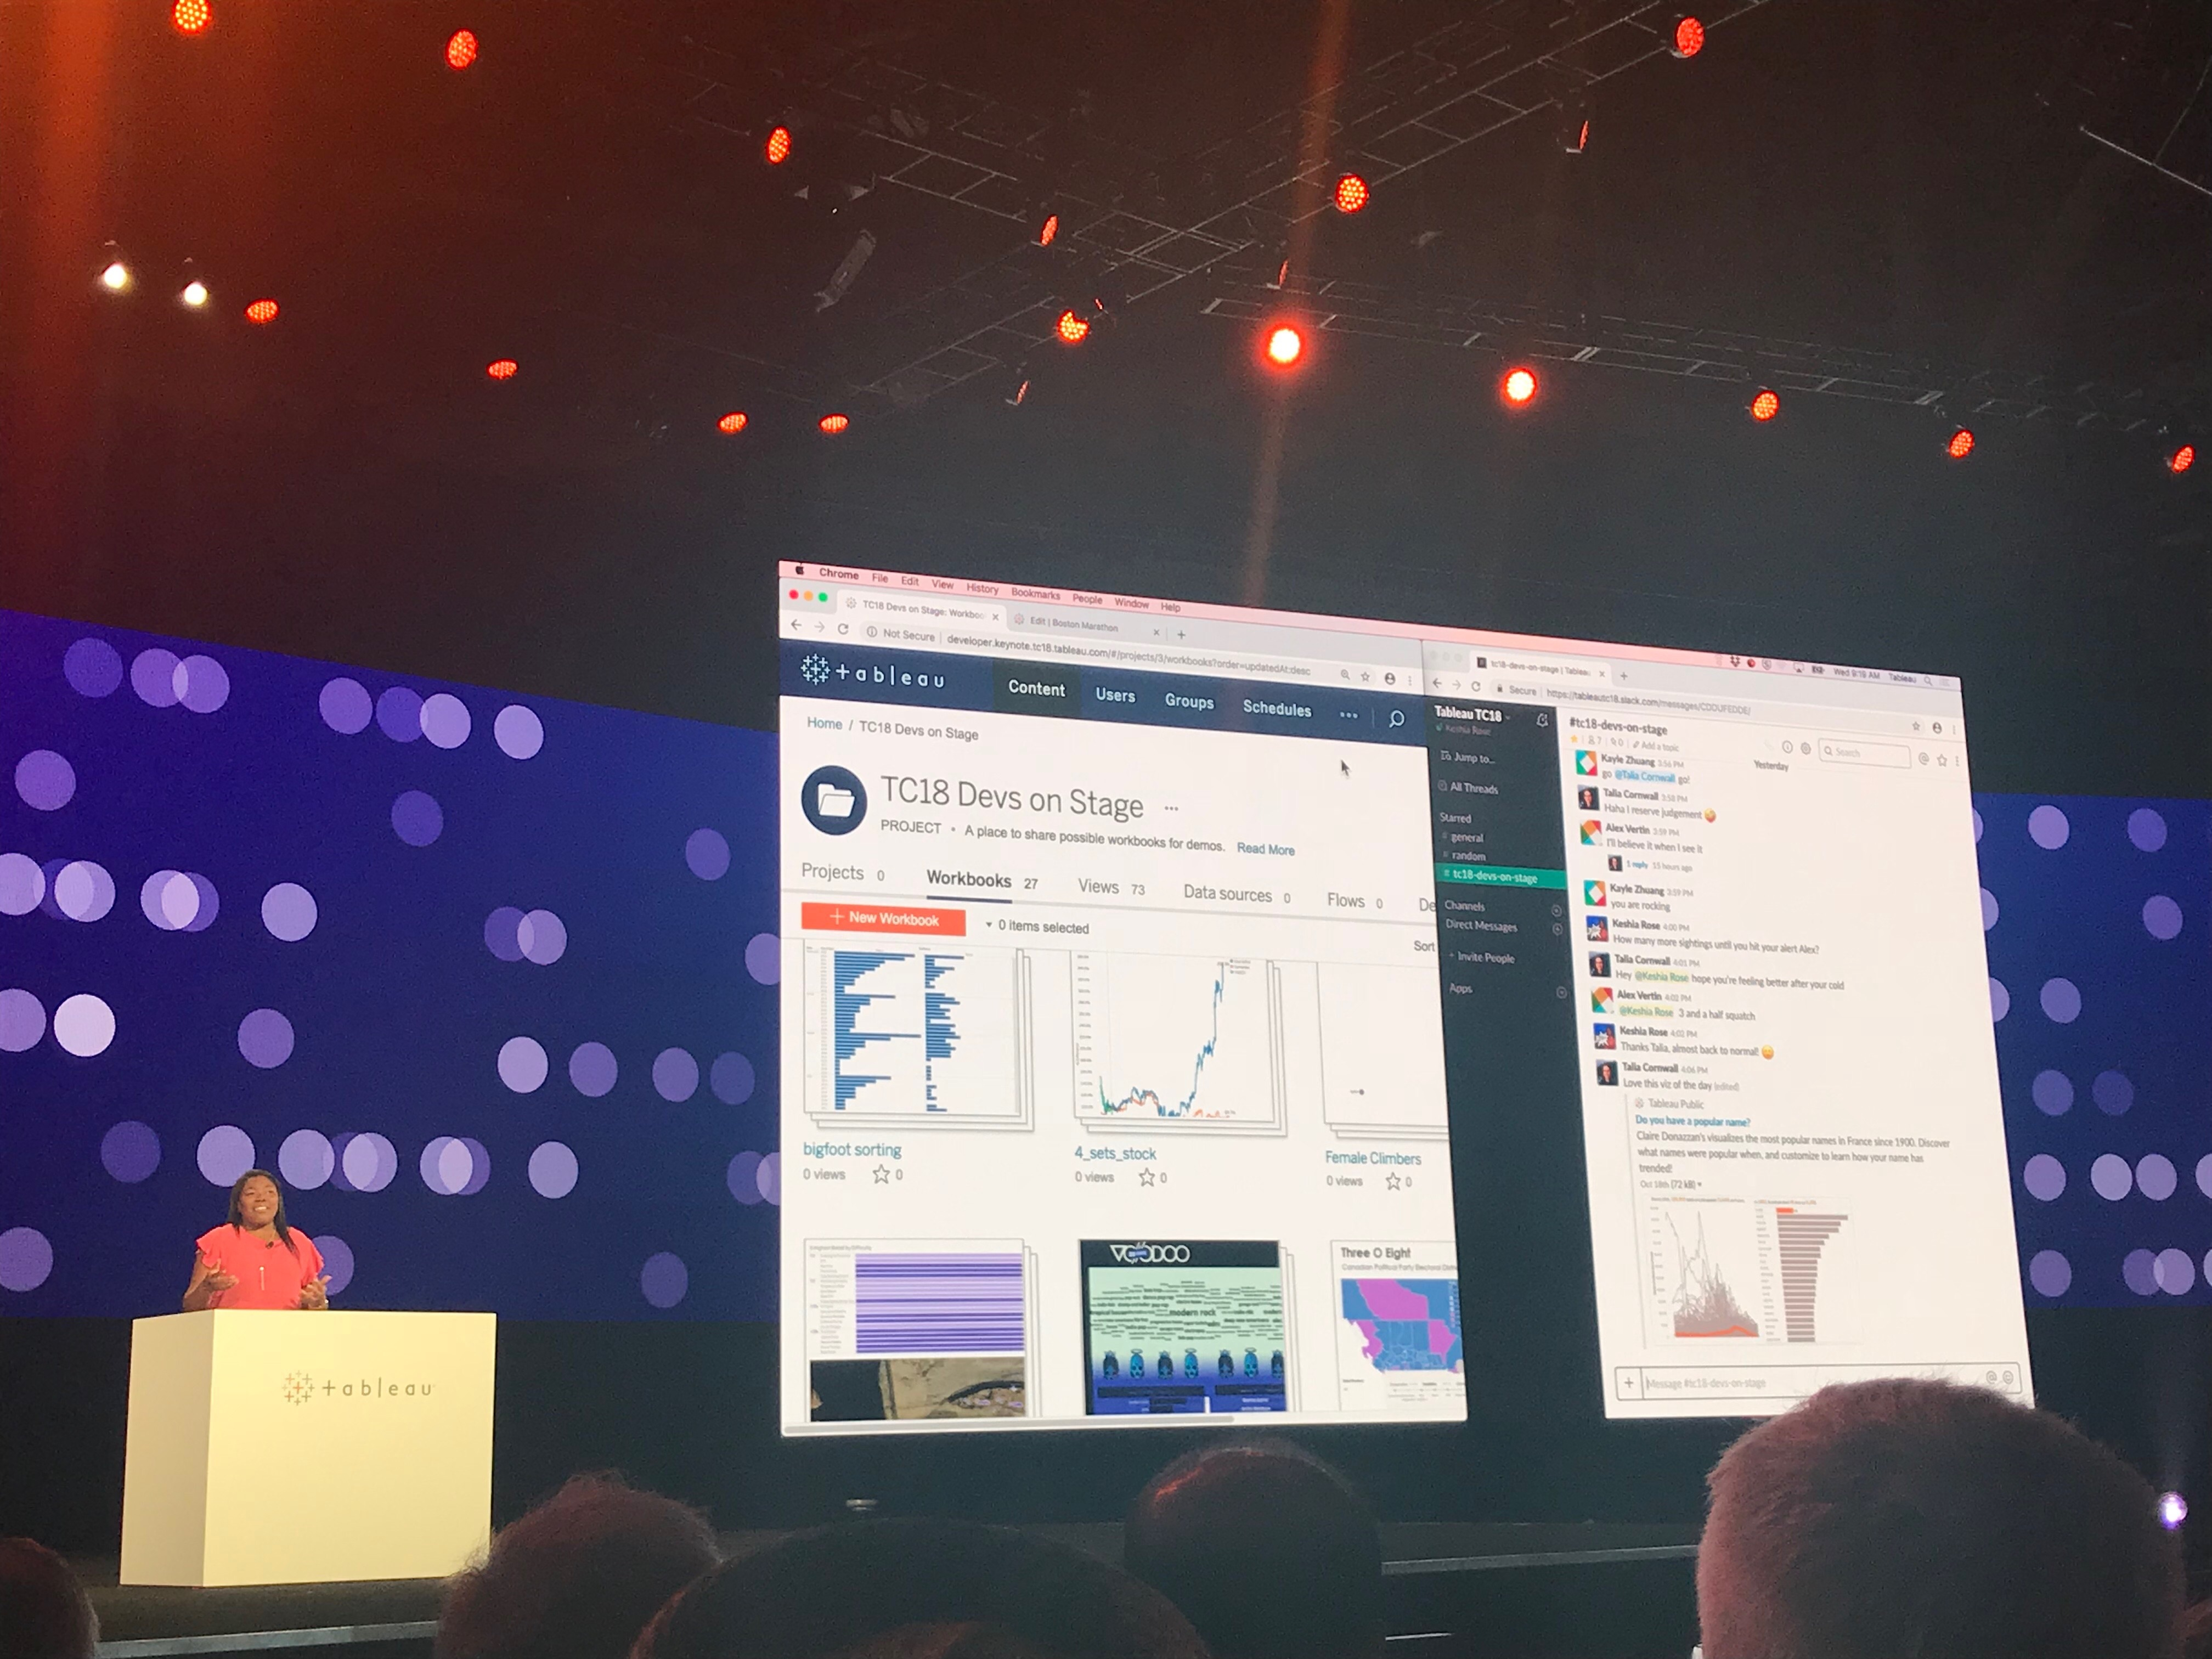 Class Notes From Tc18 Devs On Stage